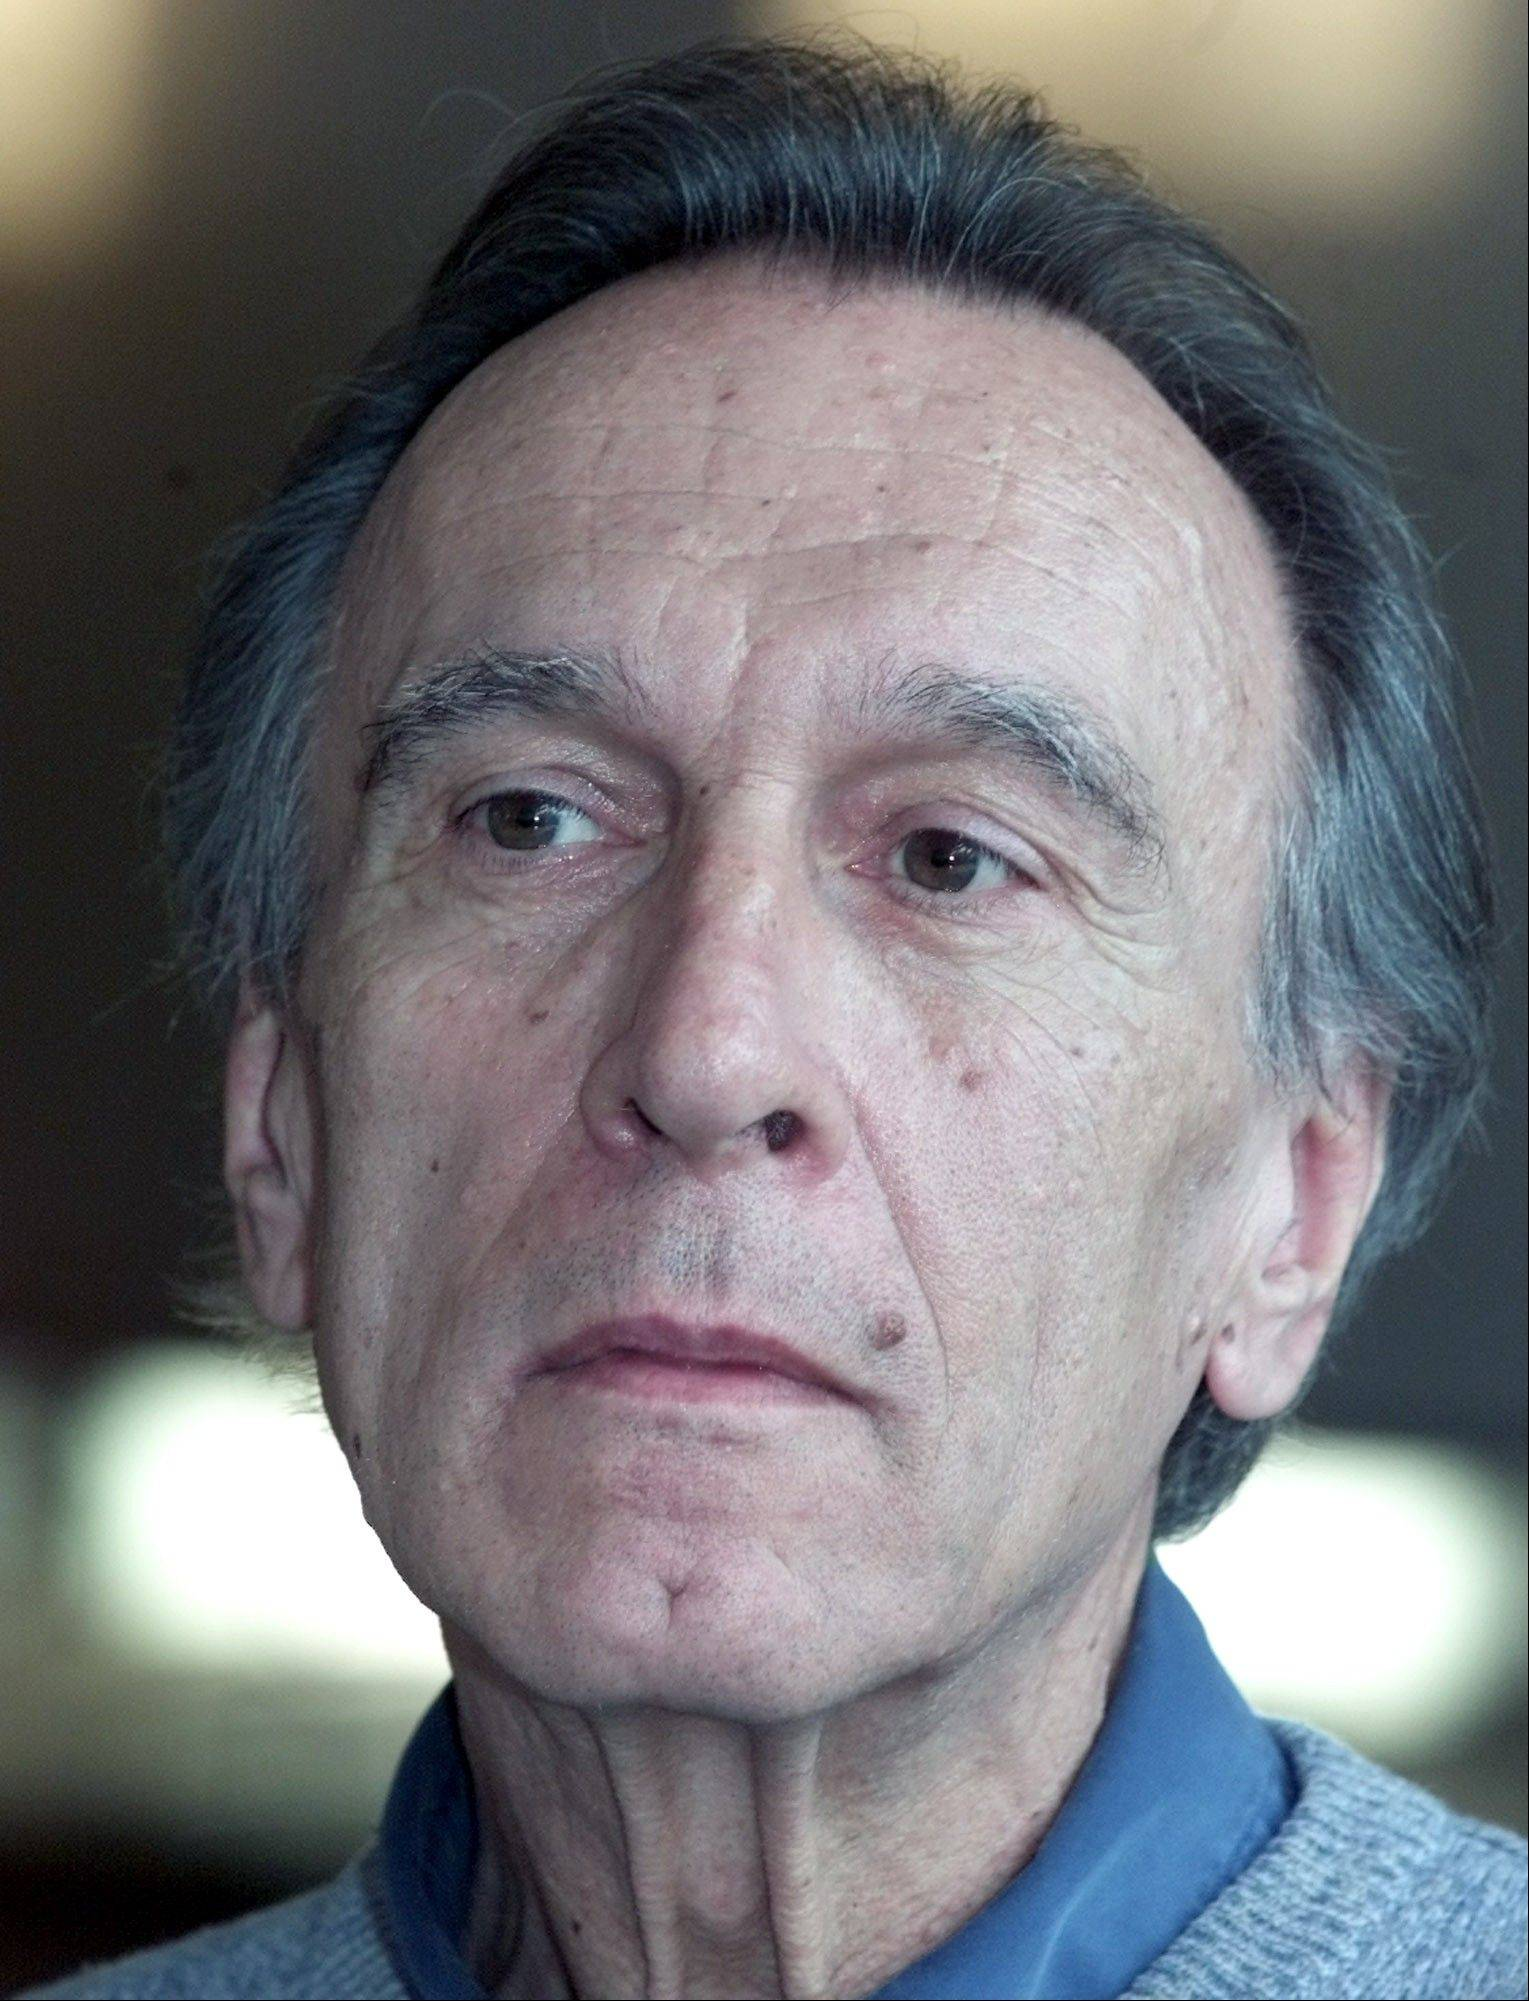 Senior conductor of the Berlin's philharmonic orchestra Claudio Abbado attends a press conference in Berlin. Claudio Abbado, a star in the great generation of Italian conductors who was revered by musicians in the world's leading orchestras, died Monday. He was 80.